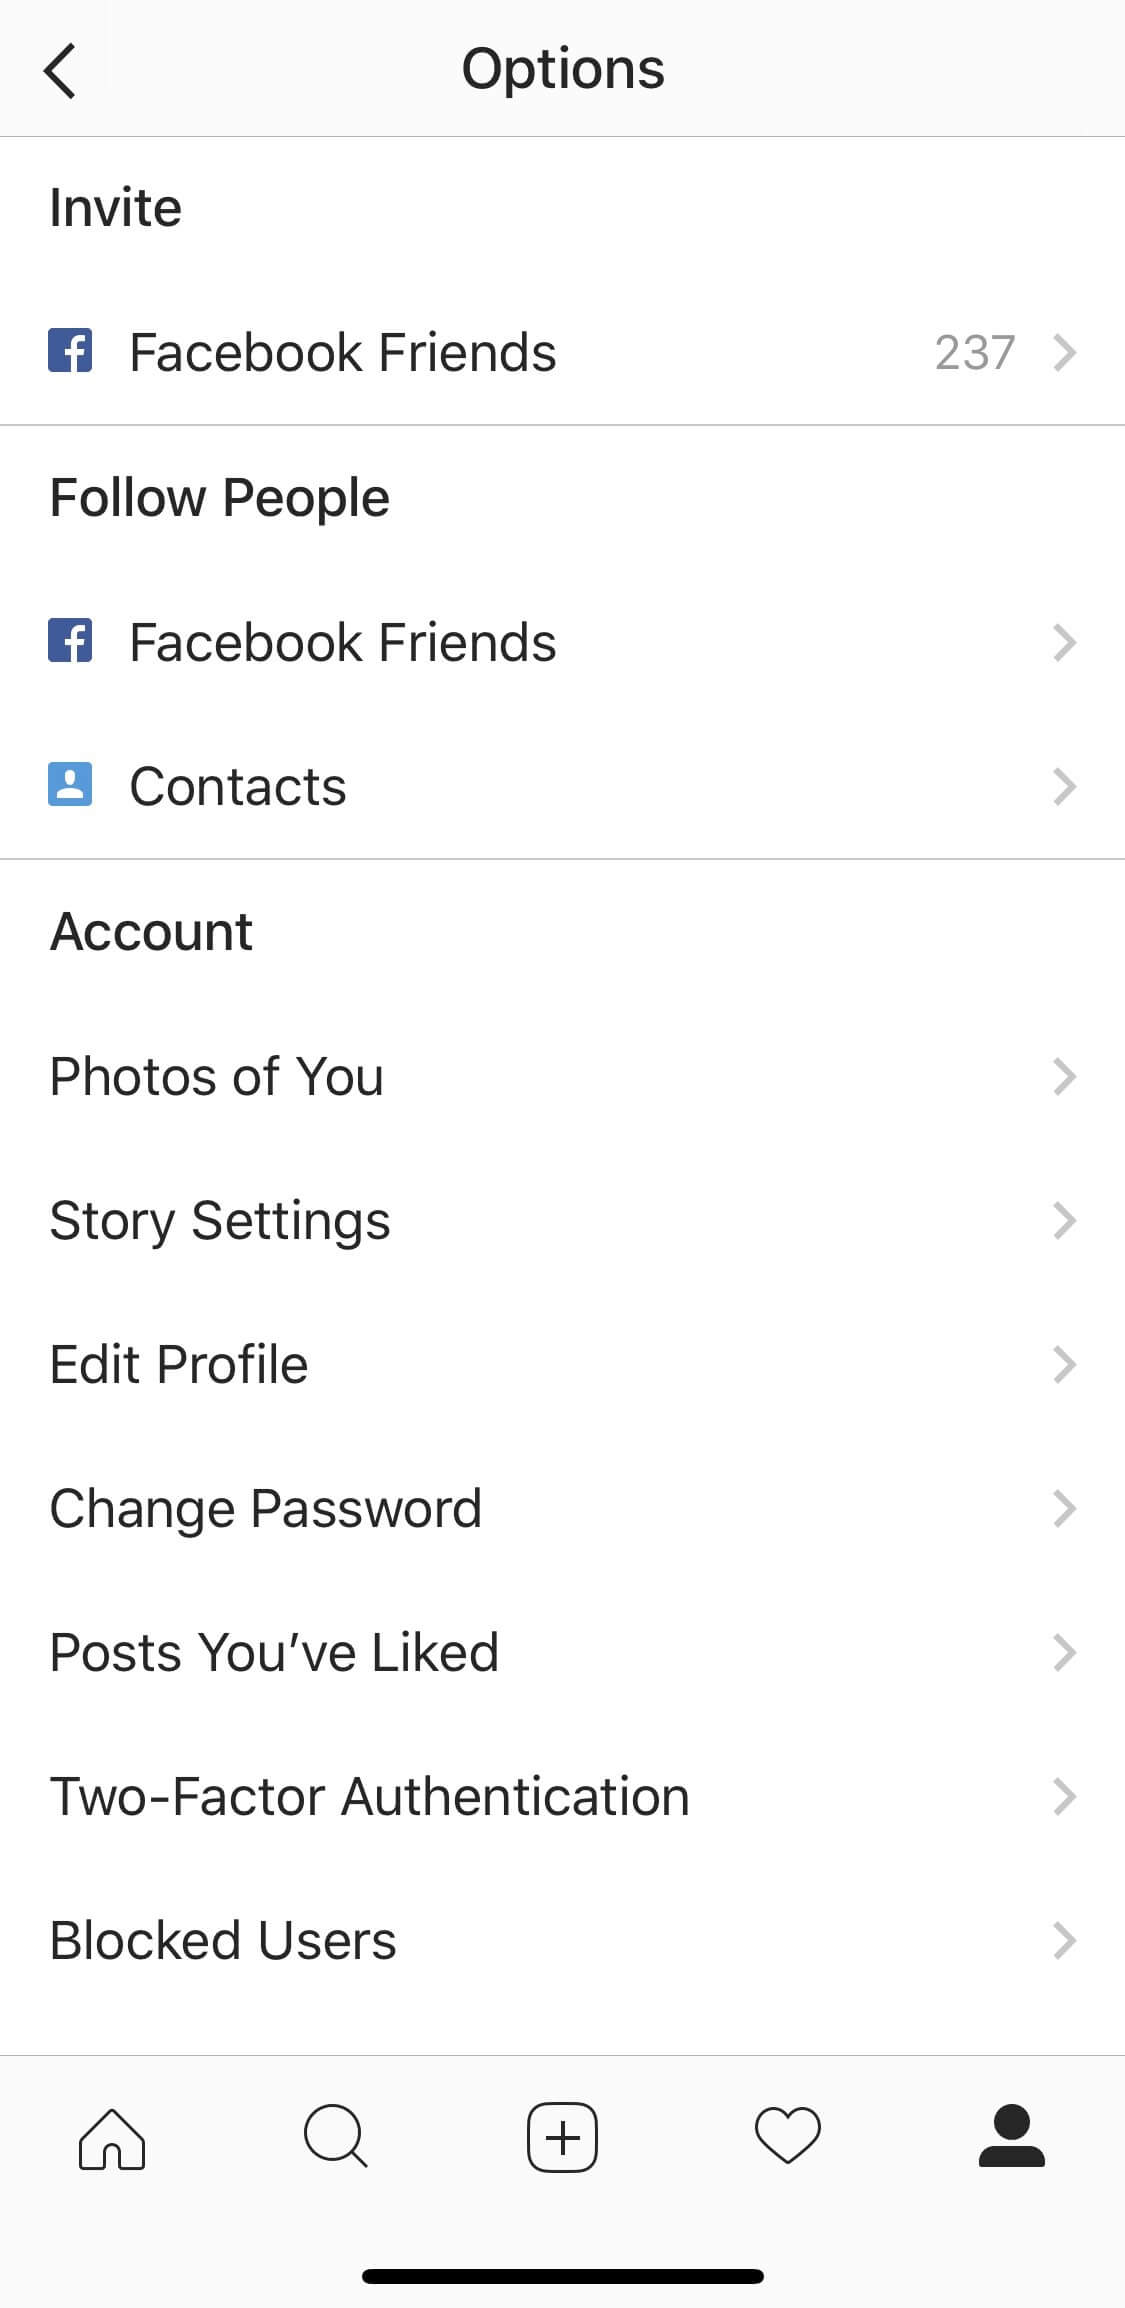 Review Instagram's privacy policy and search the Help Center for more  details.